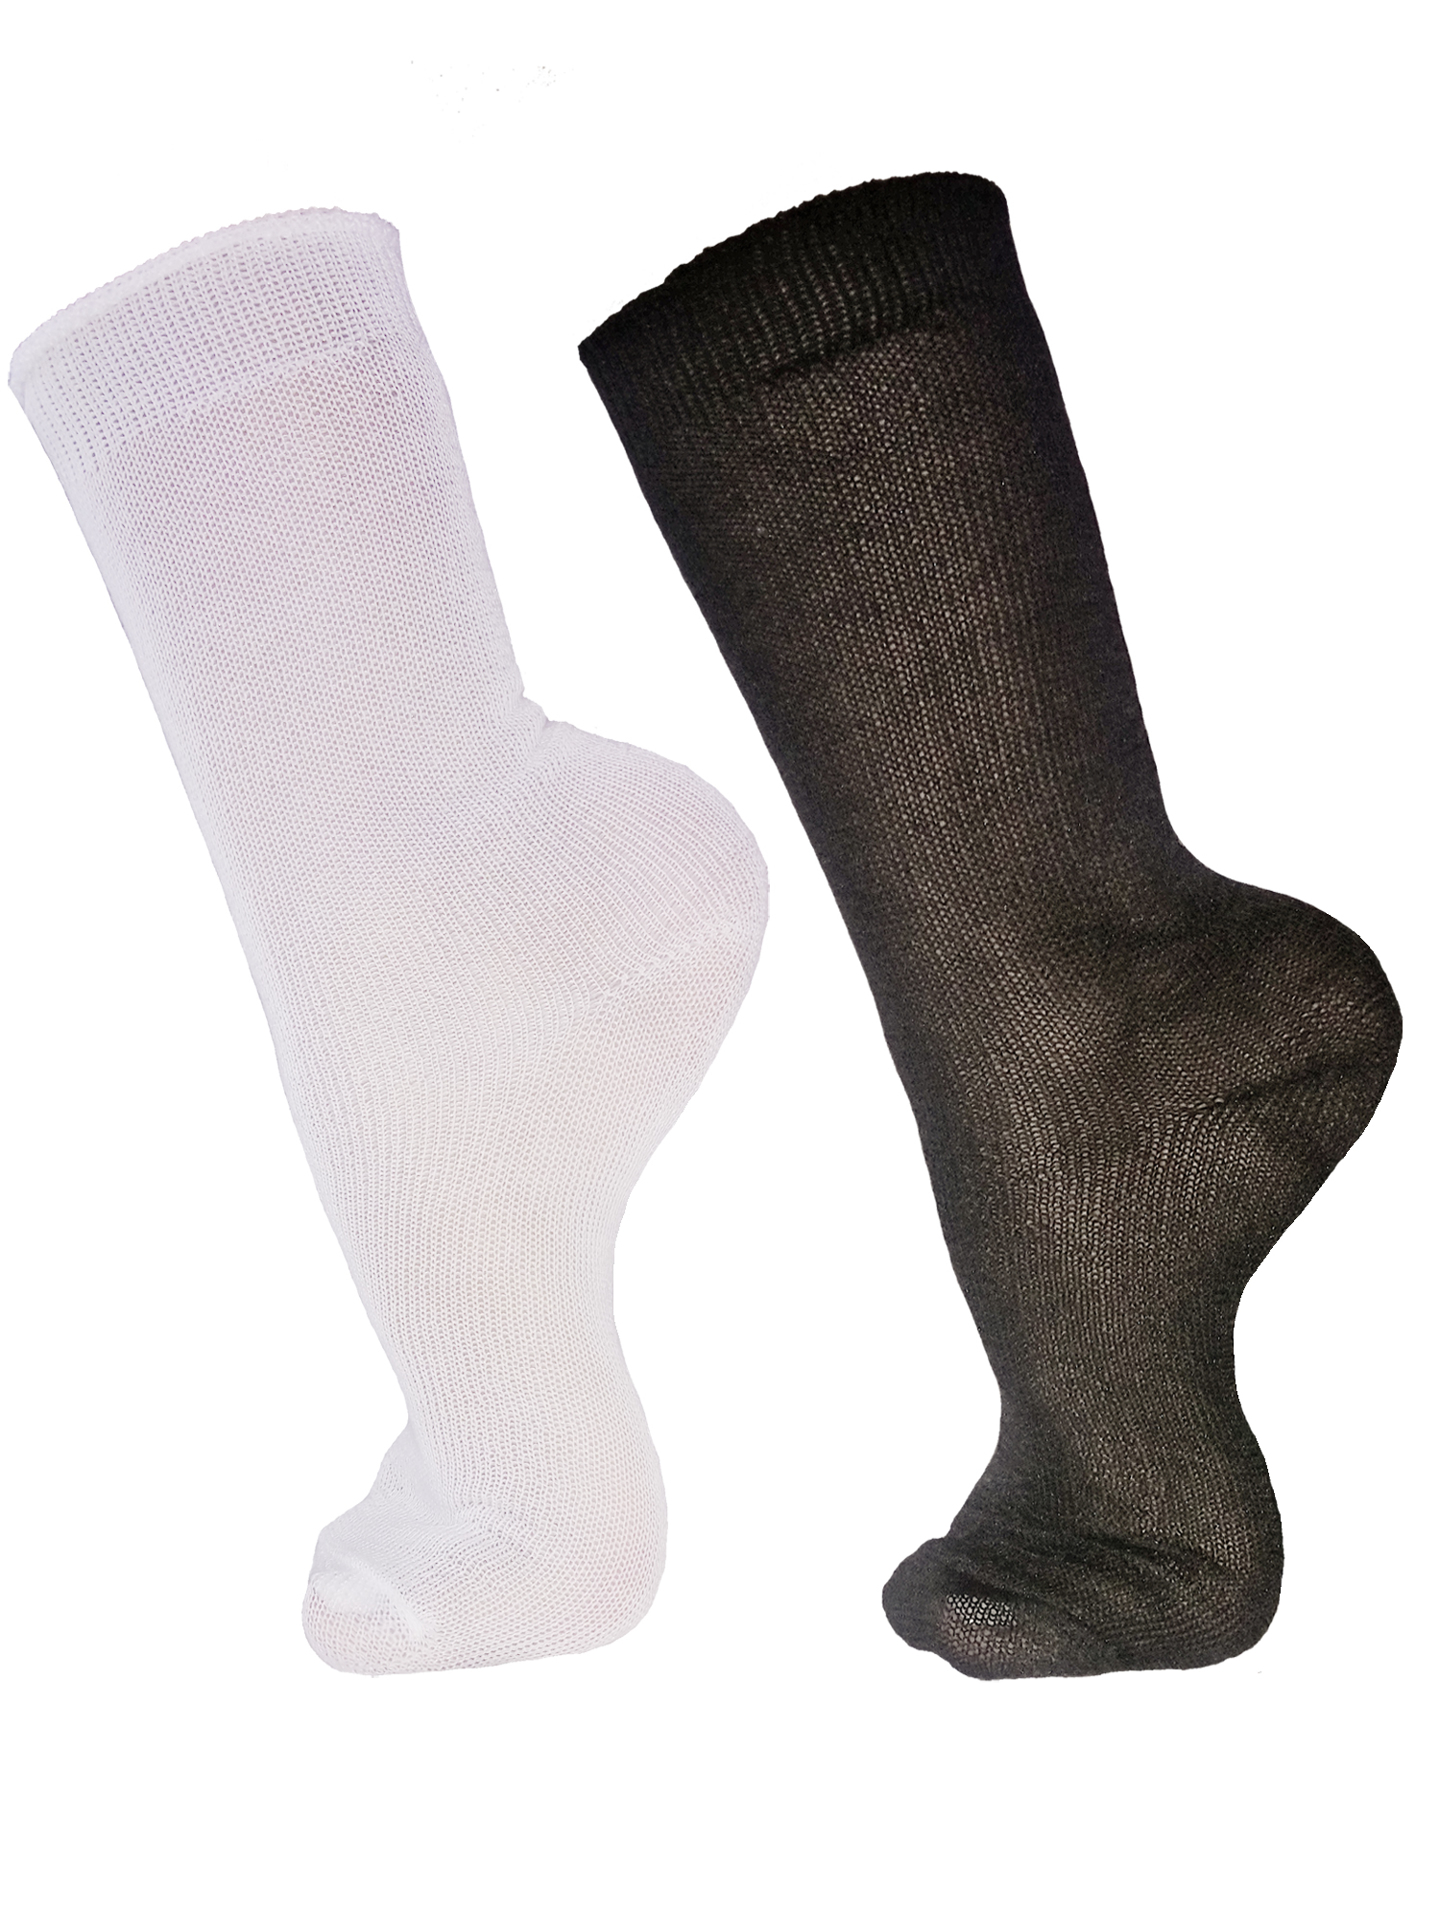 Everyday All Day Socks Underworks 20-Pack Unisex Disposable Casual Crew Socks For Business or Leisure Travel